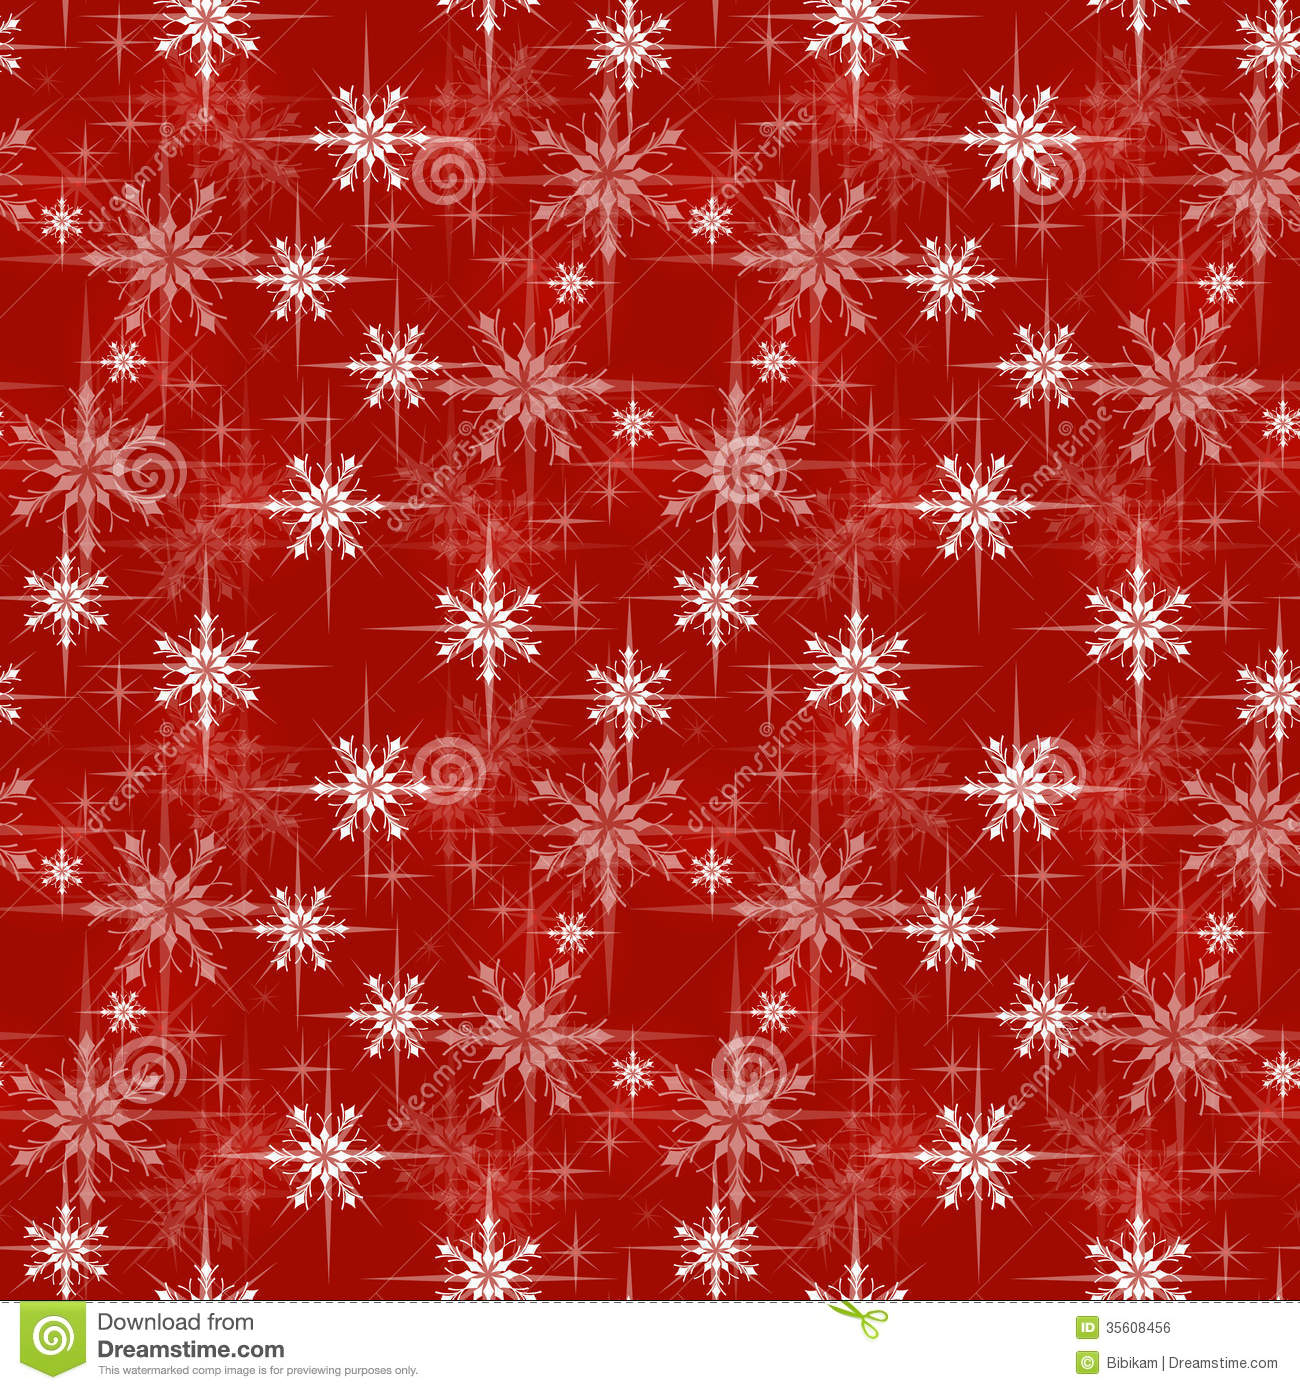 Christmas Wrapping Paper Pattern Royalty Free Stock Image - Image ...